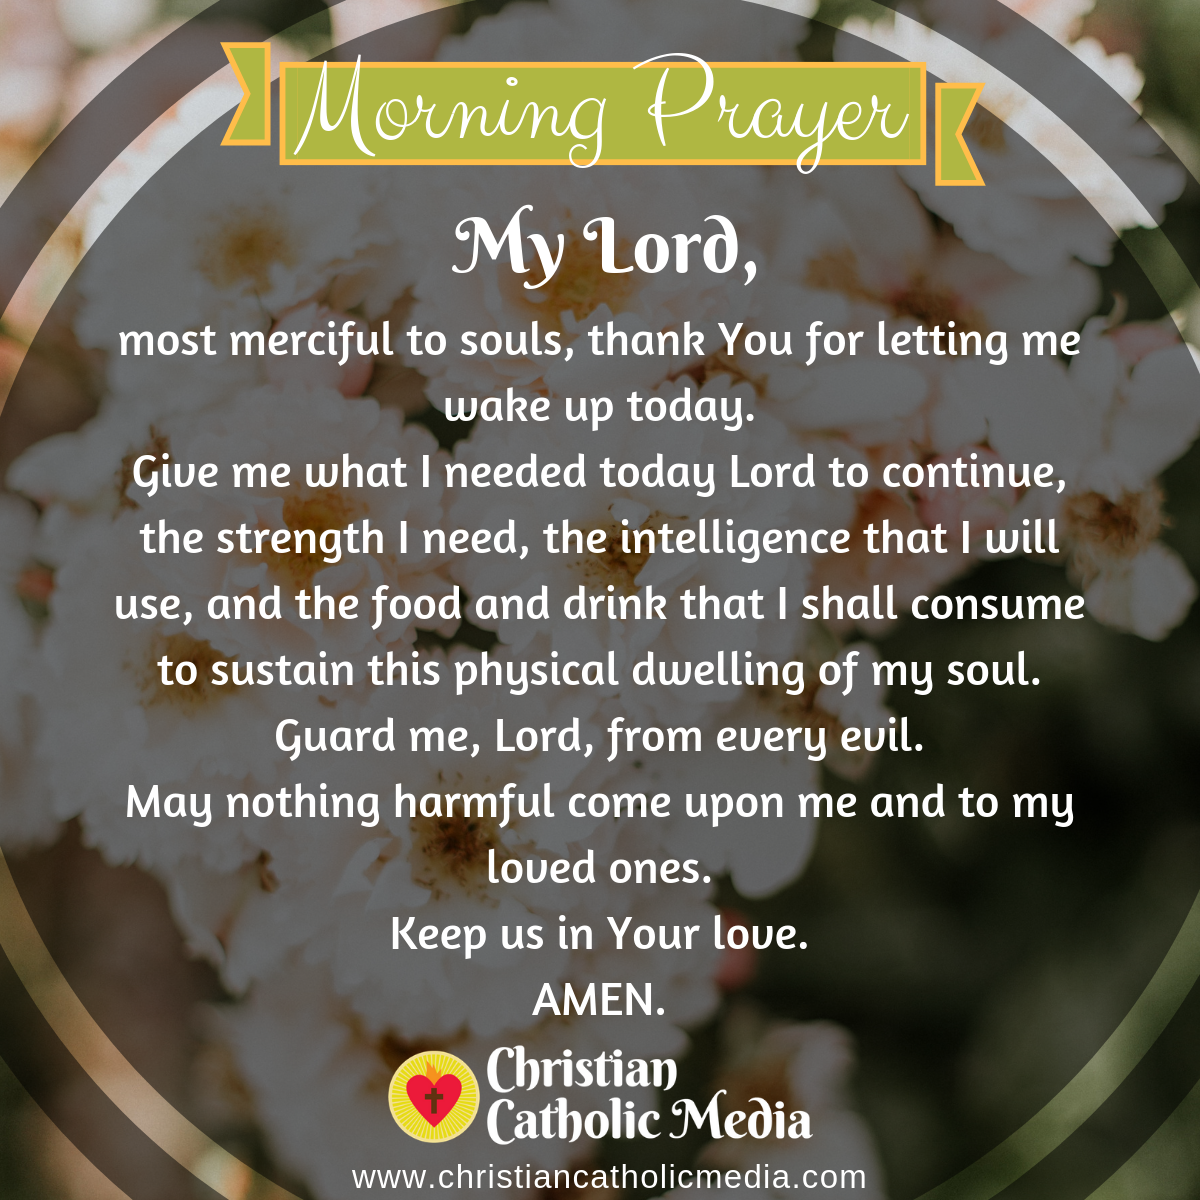 Morning Prayer Catholic Thursday 5-21-2020